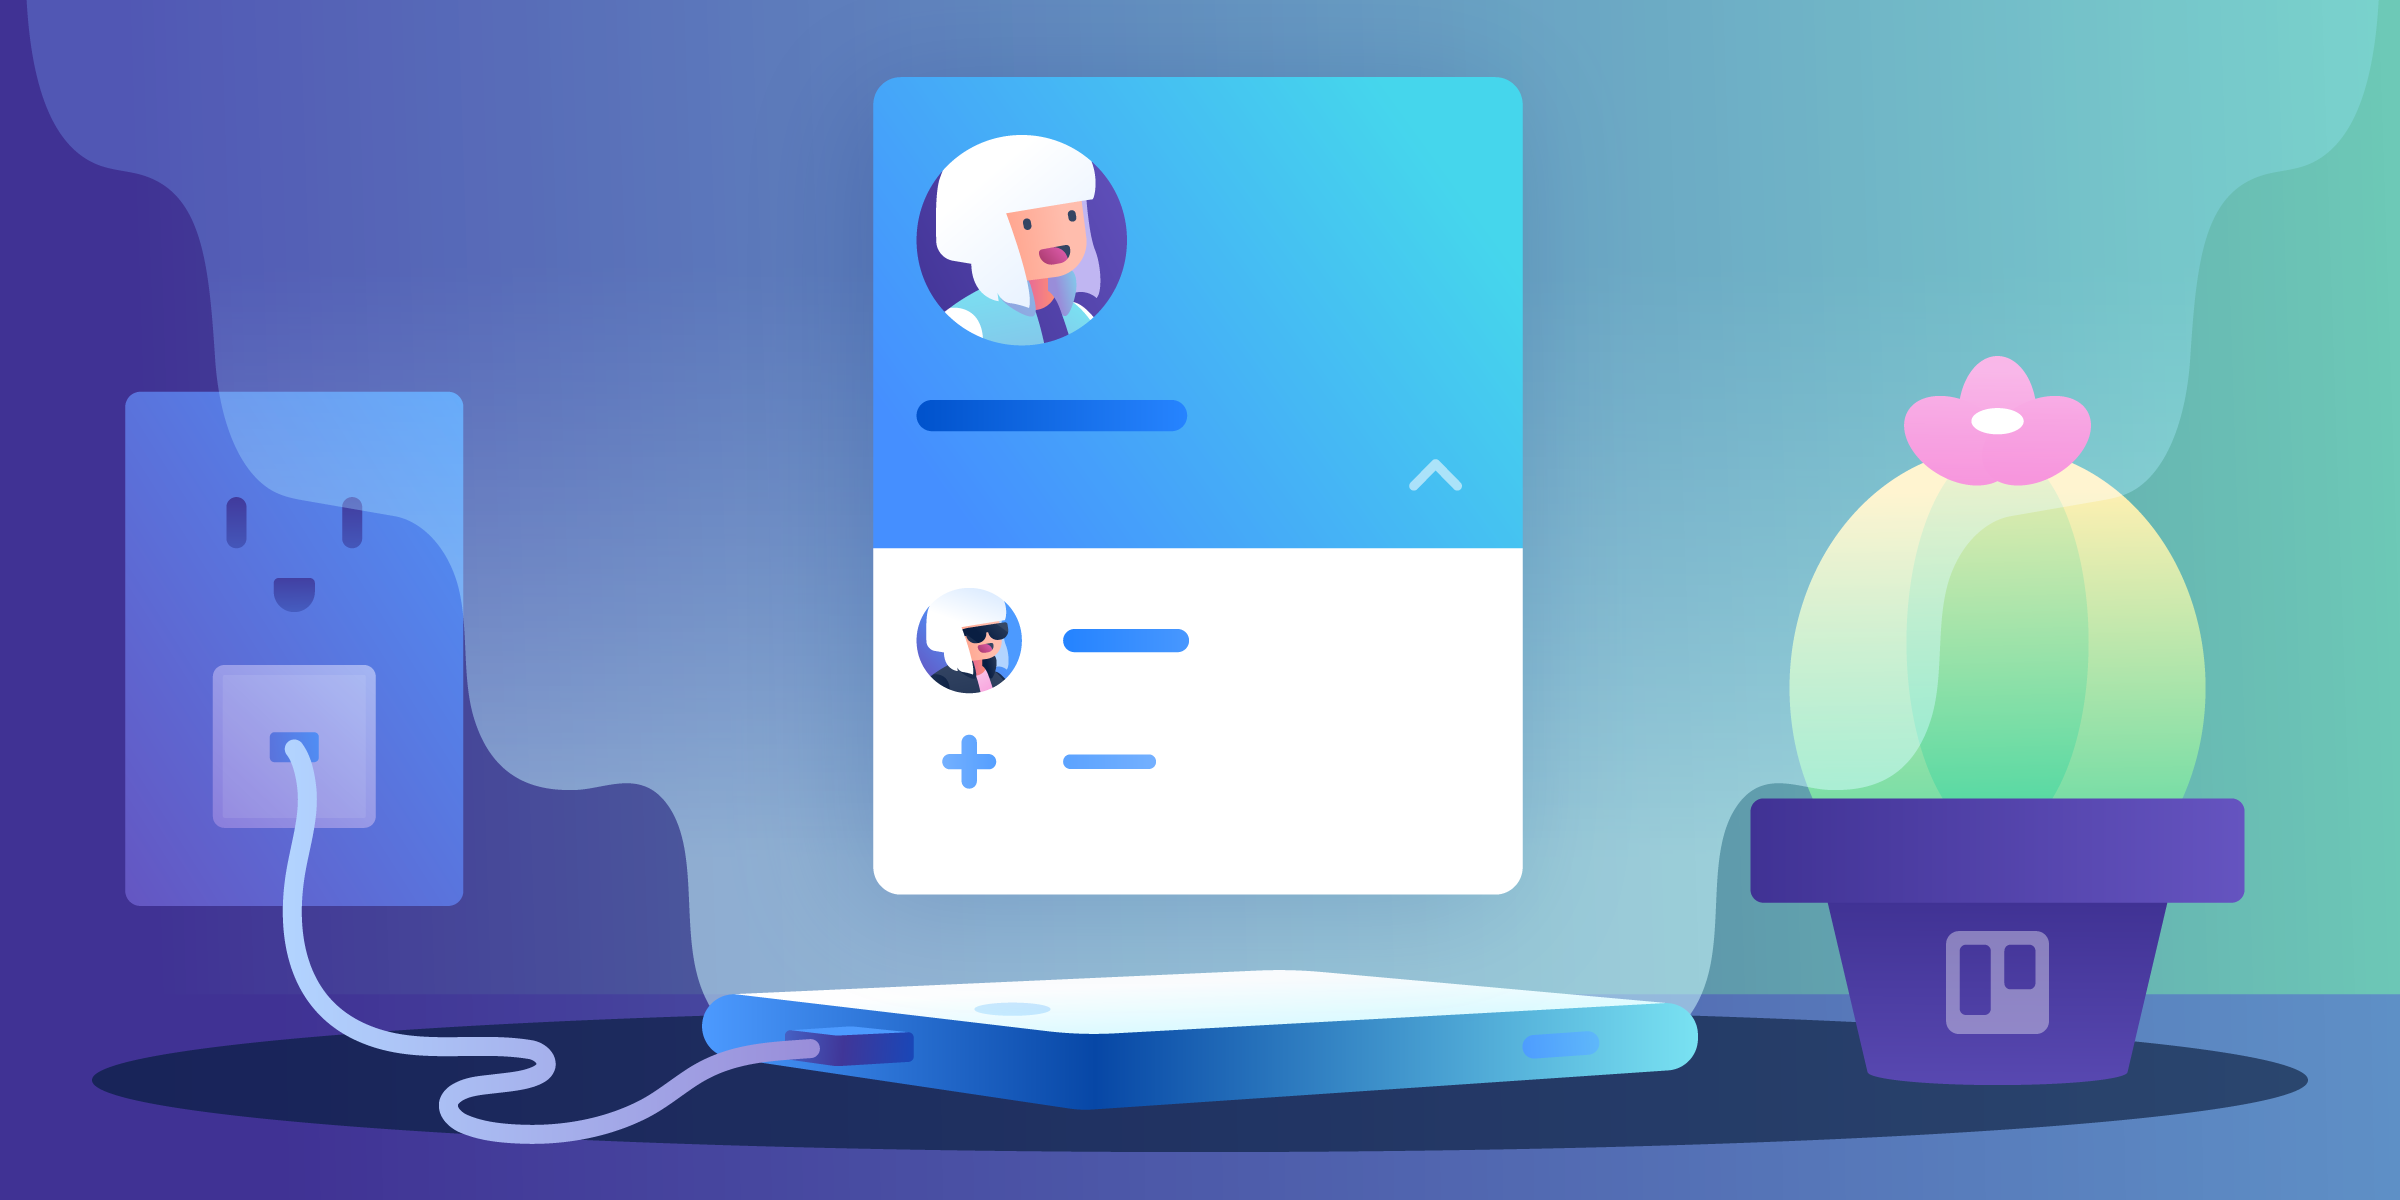 Manage Multiple Trello Accounts With The New Account Switcher Feature